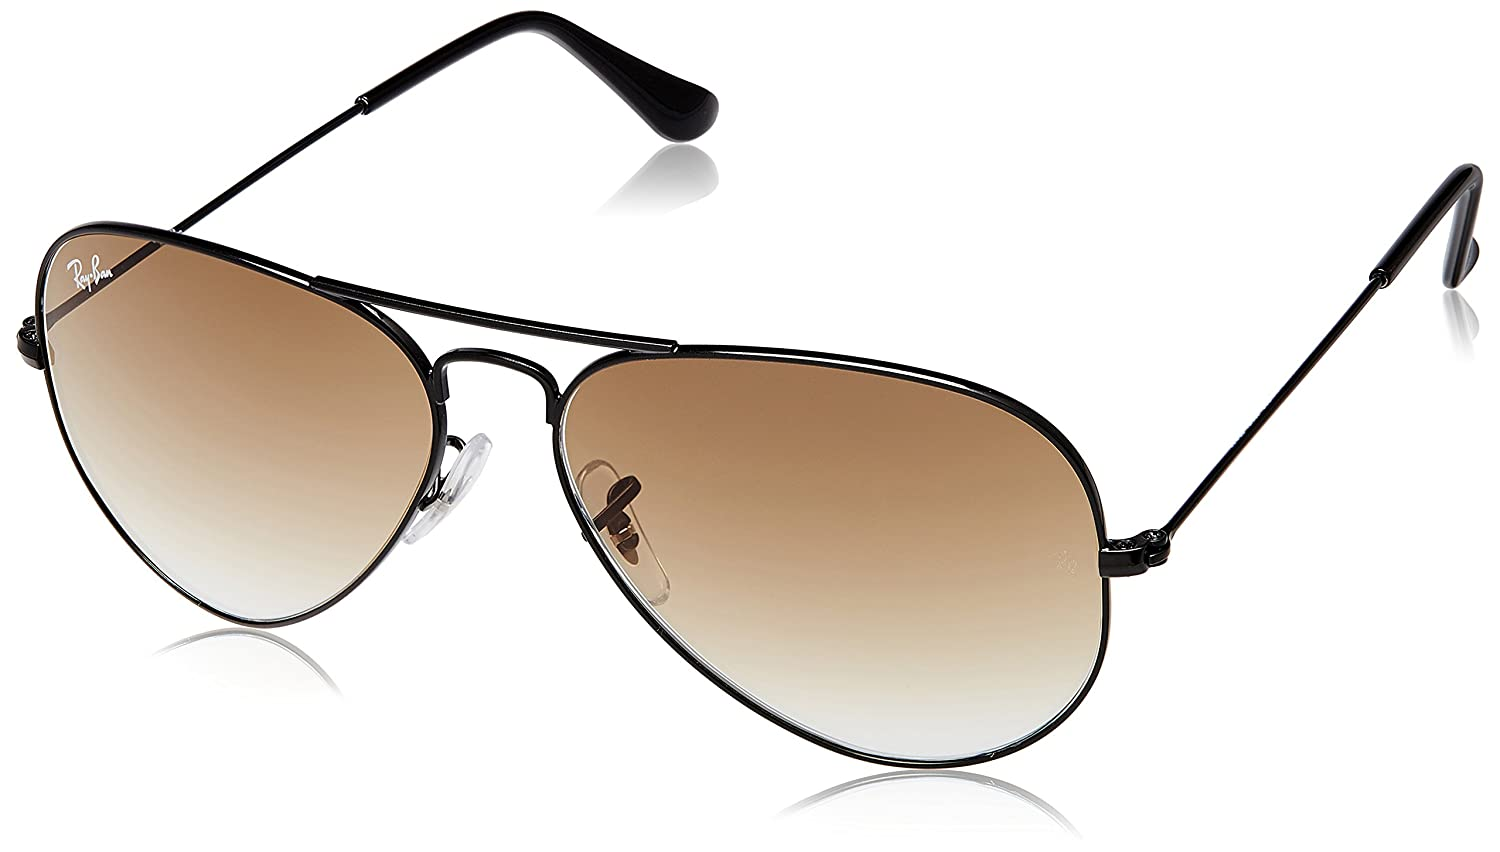 6bf61e73c51a Ray-Ban Aviator Sunglasses (Black) (RB3025|002/51 58): Amazon.in: Clothing  & Accessories